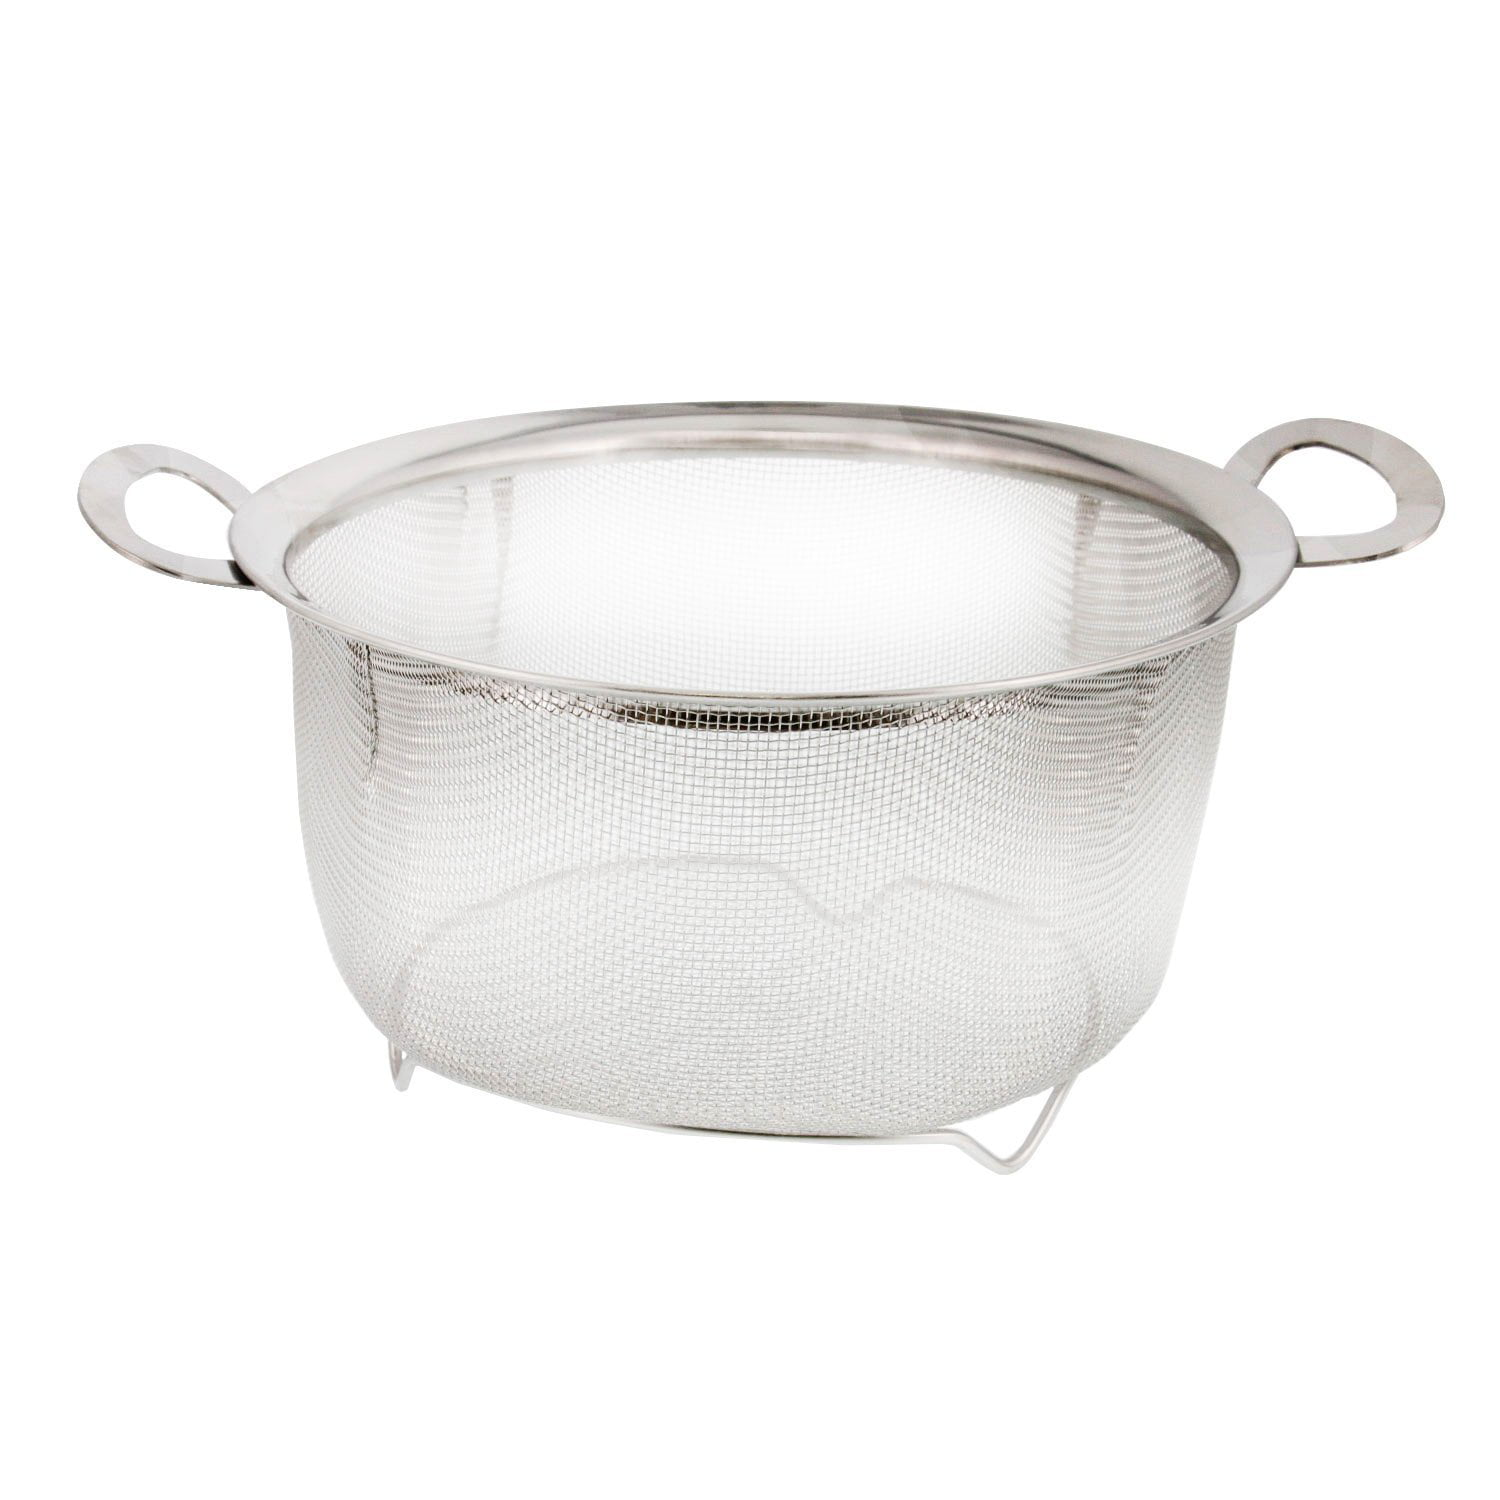 3 Quart Stainless Steel Mesh Net Strainer Basket with a Wide Rim, Resting Feet and Handles Colander to Strain,... by